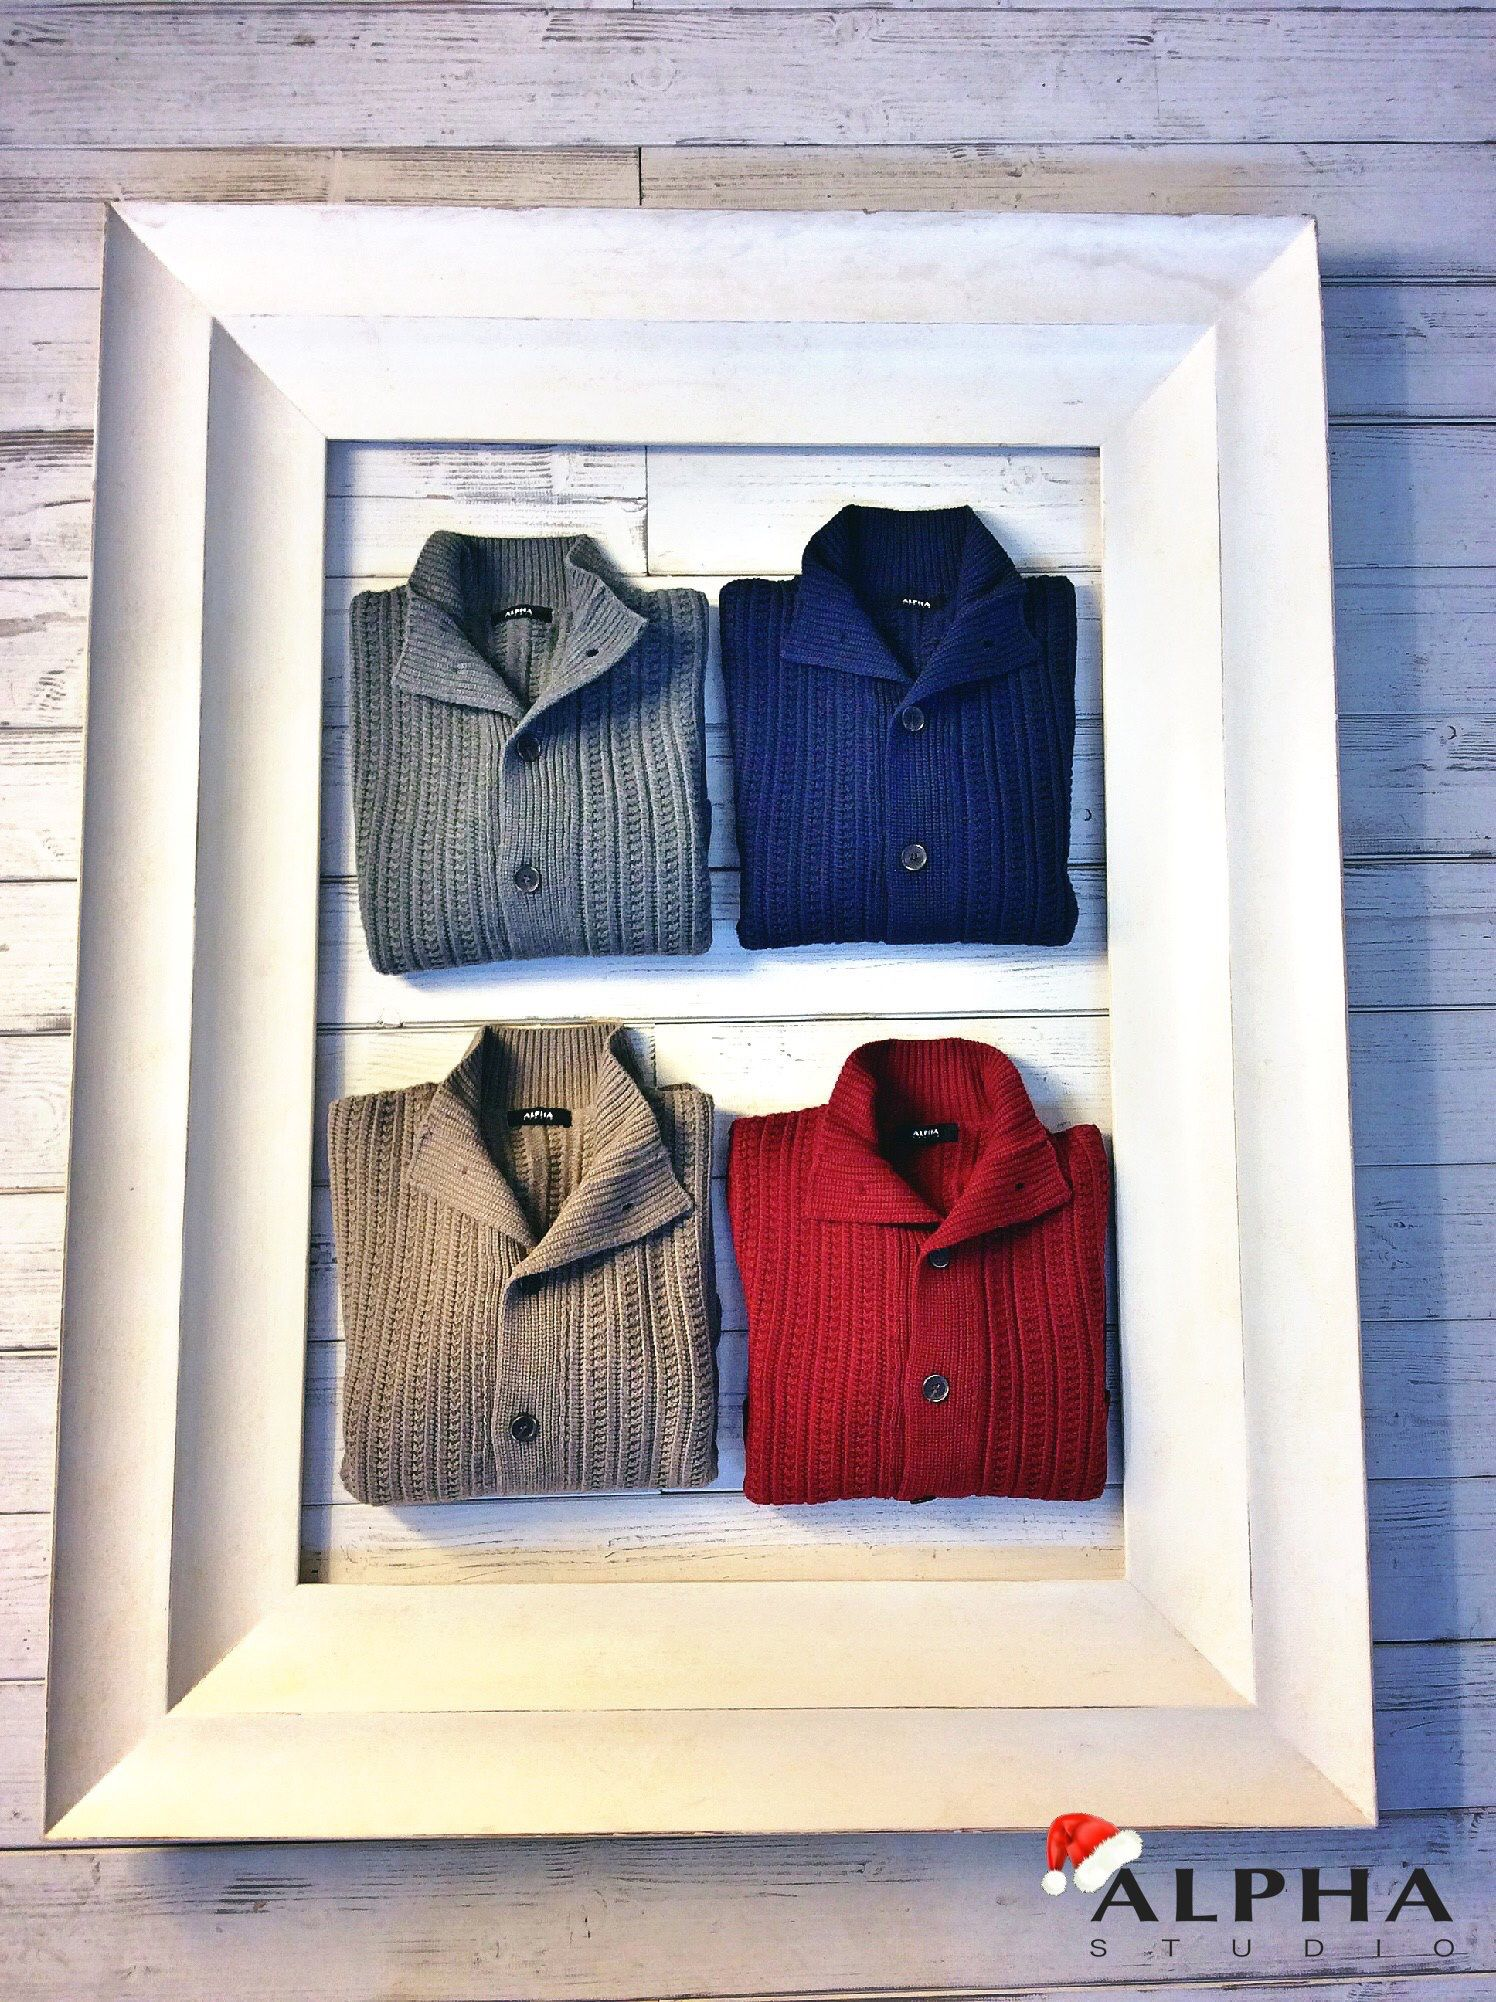 Nothing better than start the week with #AlphaStudio colored outfit! Choose your favourite one for Christmas!  #knitwear #fw15 #christmas #christmas2015 #christmasgift #color #pull #menswear #menstyle #mensfashion #fashion #glamour #outfitoftheday #monday #style #stylish #stylishoutfit #Florence #yarn